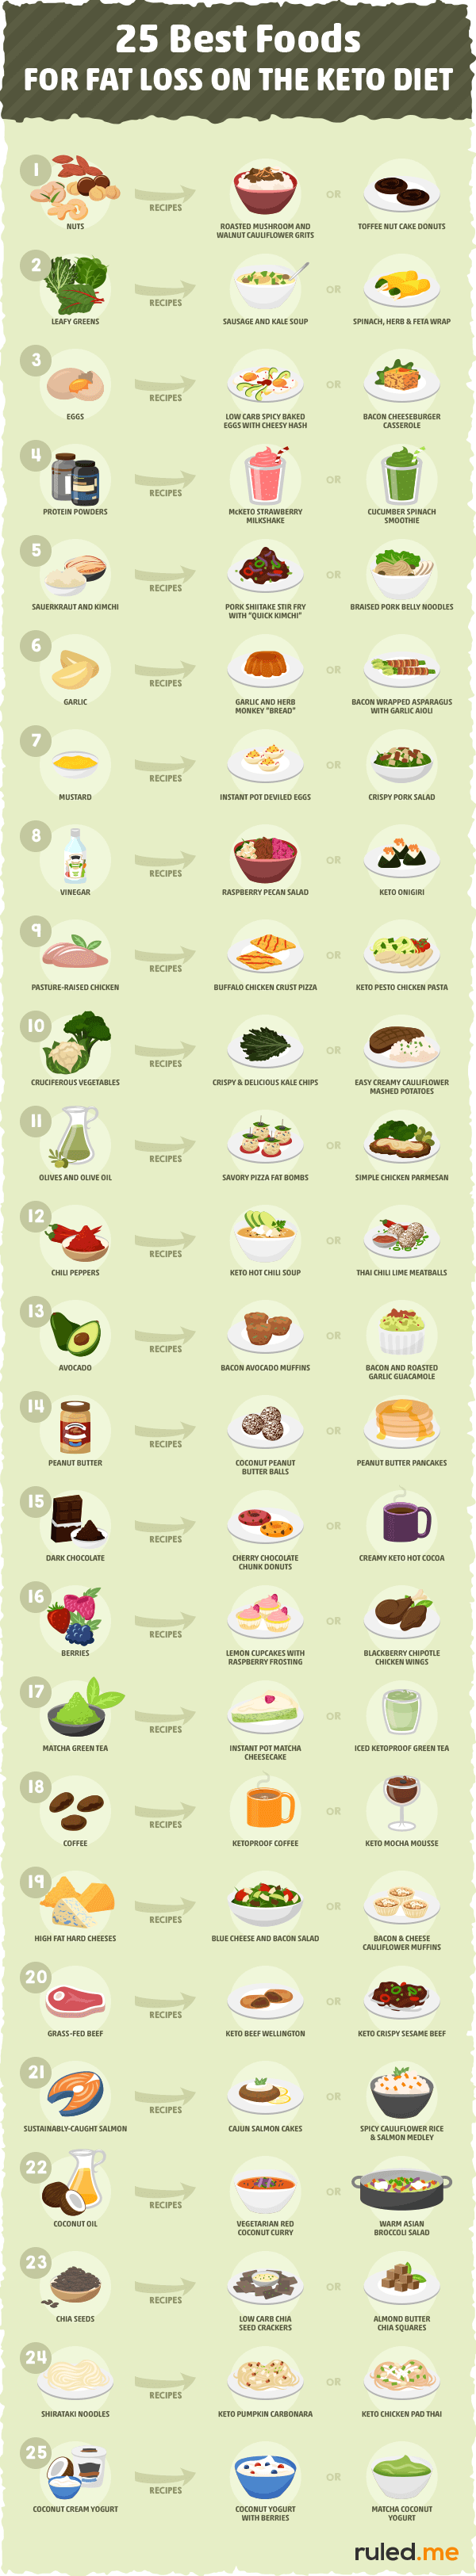 Best Foods for Fat Loss on the Keto Diet